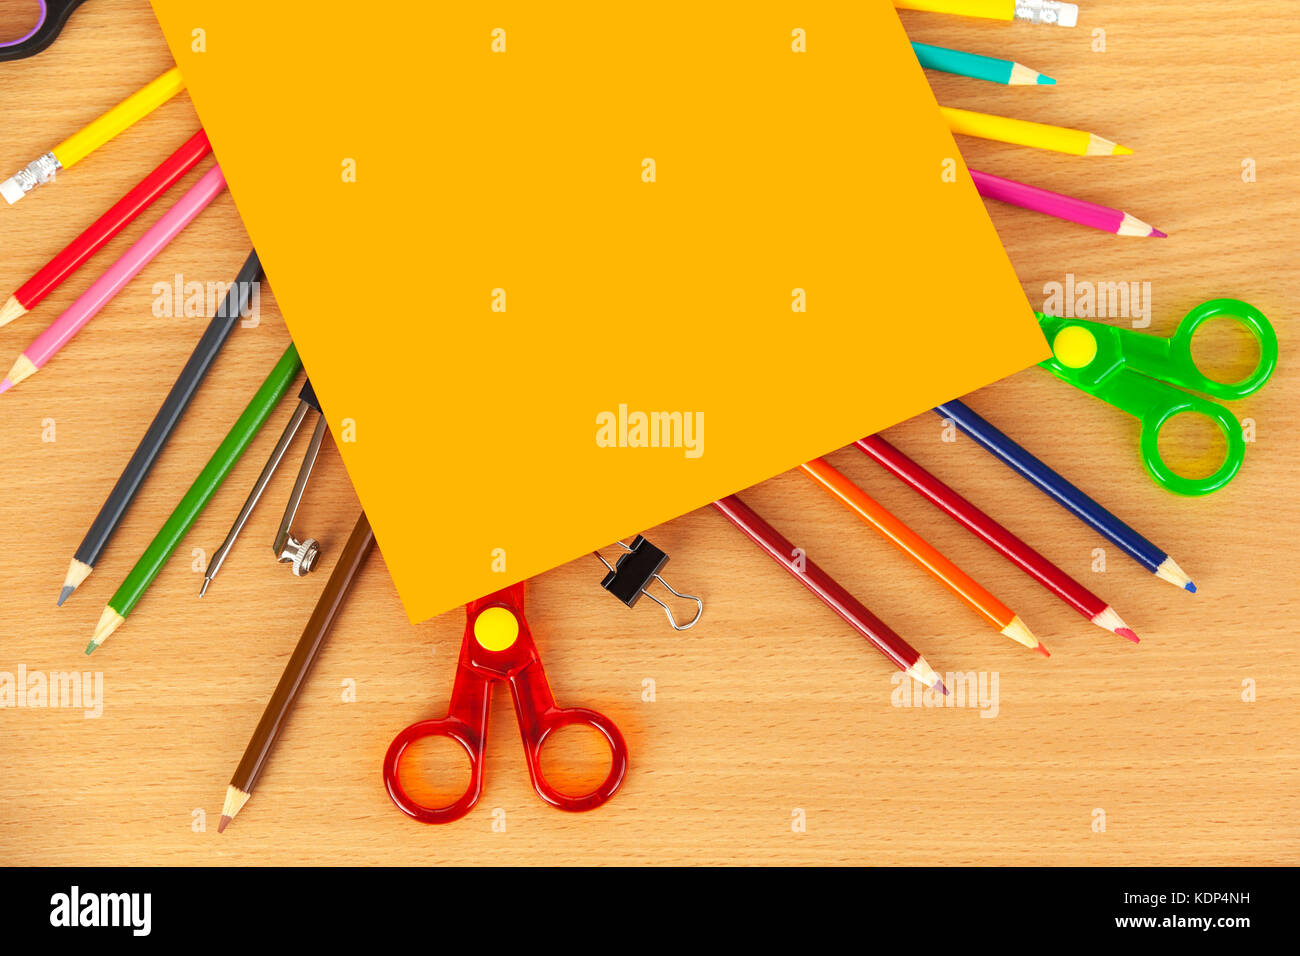 Sheet of orange card laying on top of colouring pencils and safety scissors on a wooden desk Stock Photo